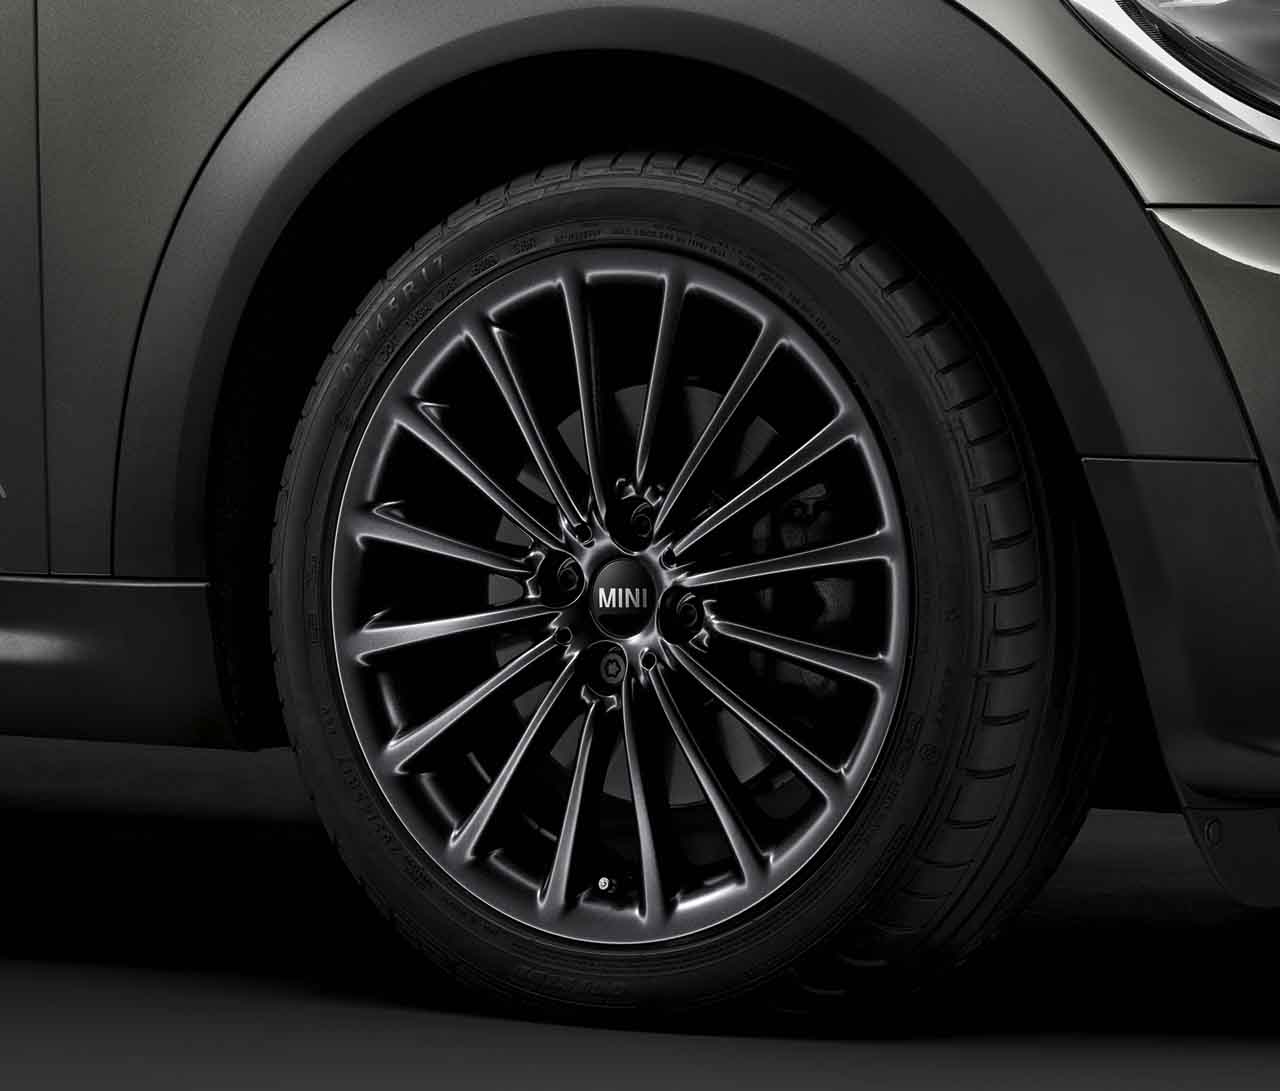 Custom Multi Spoke wheels and rims by TSW. TSW offers a range of custom staggered Multi Spoke wheels and rims for your car, truck and SUV.